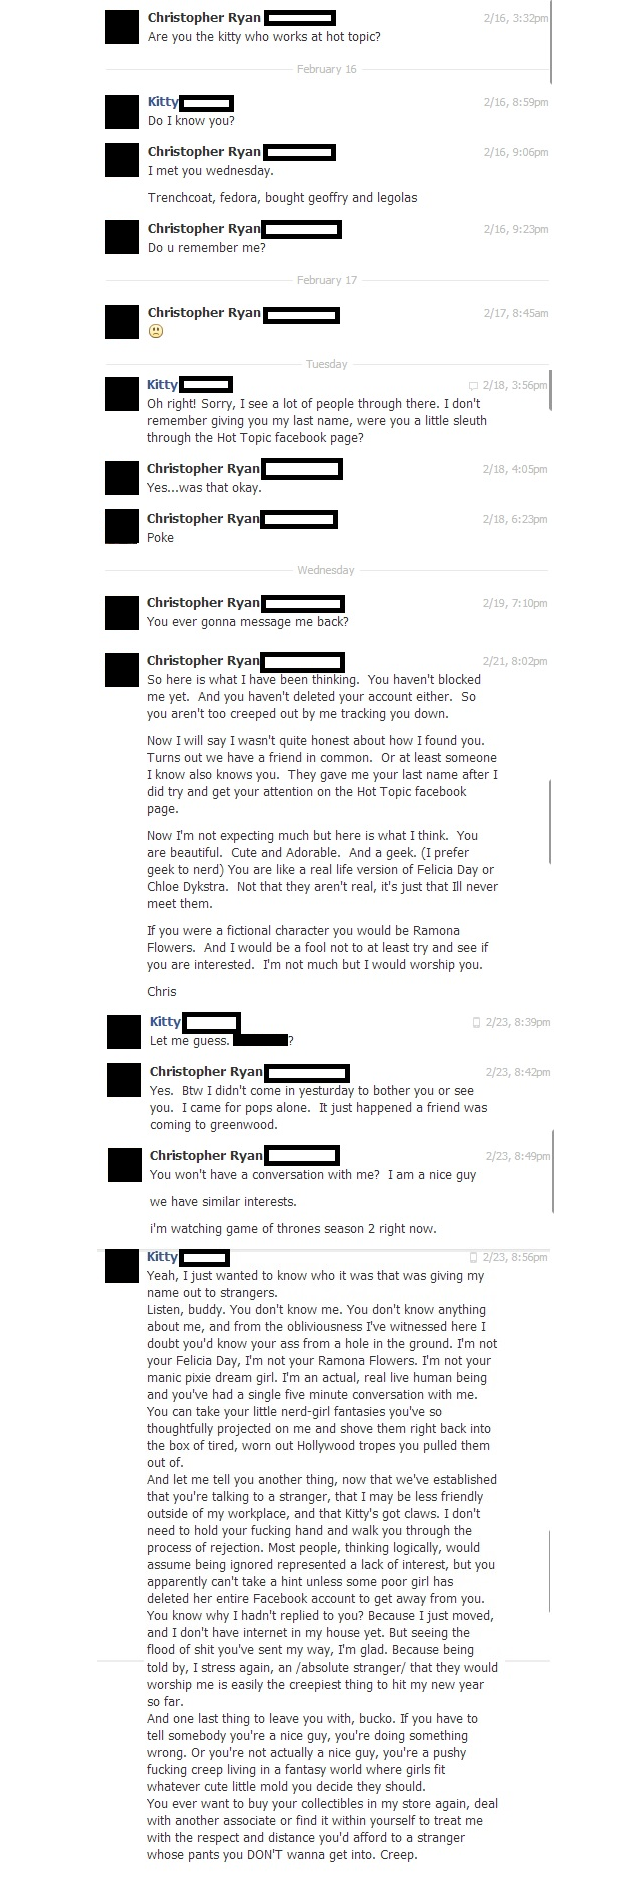 Creep Stalks Hot Topic Employee On Facebook, Gets Served